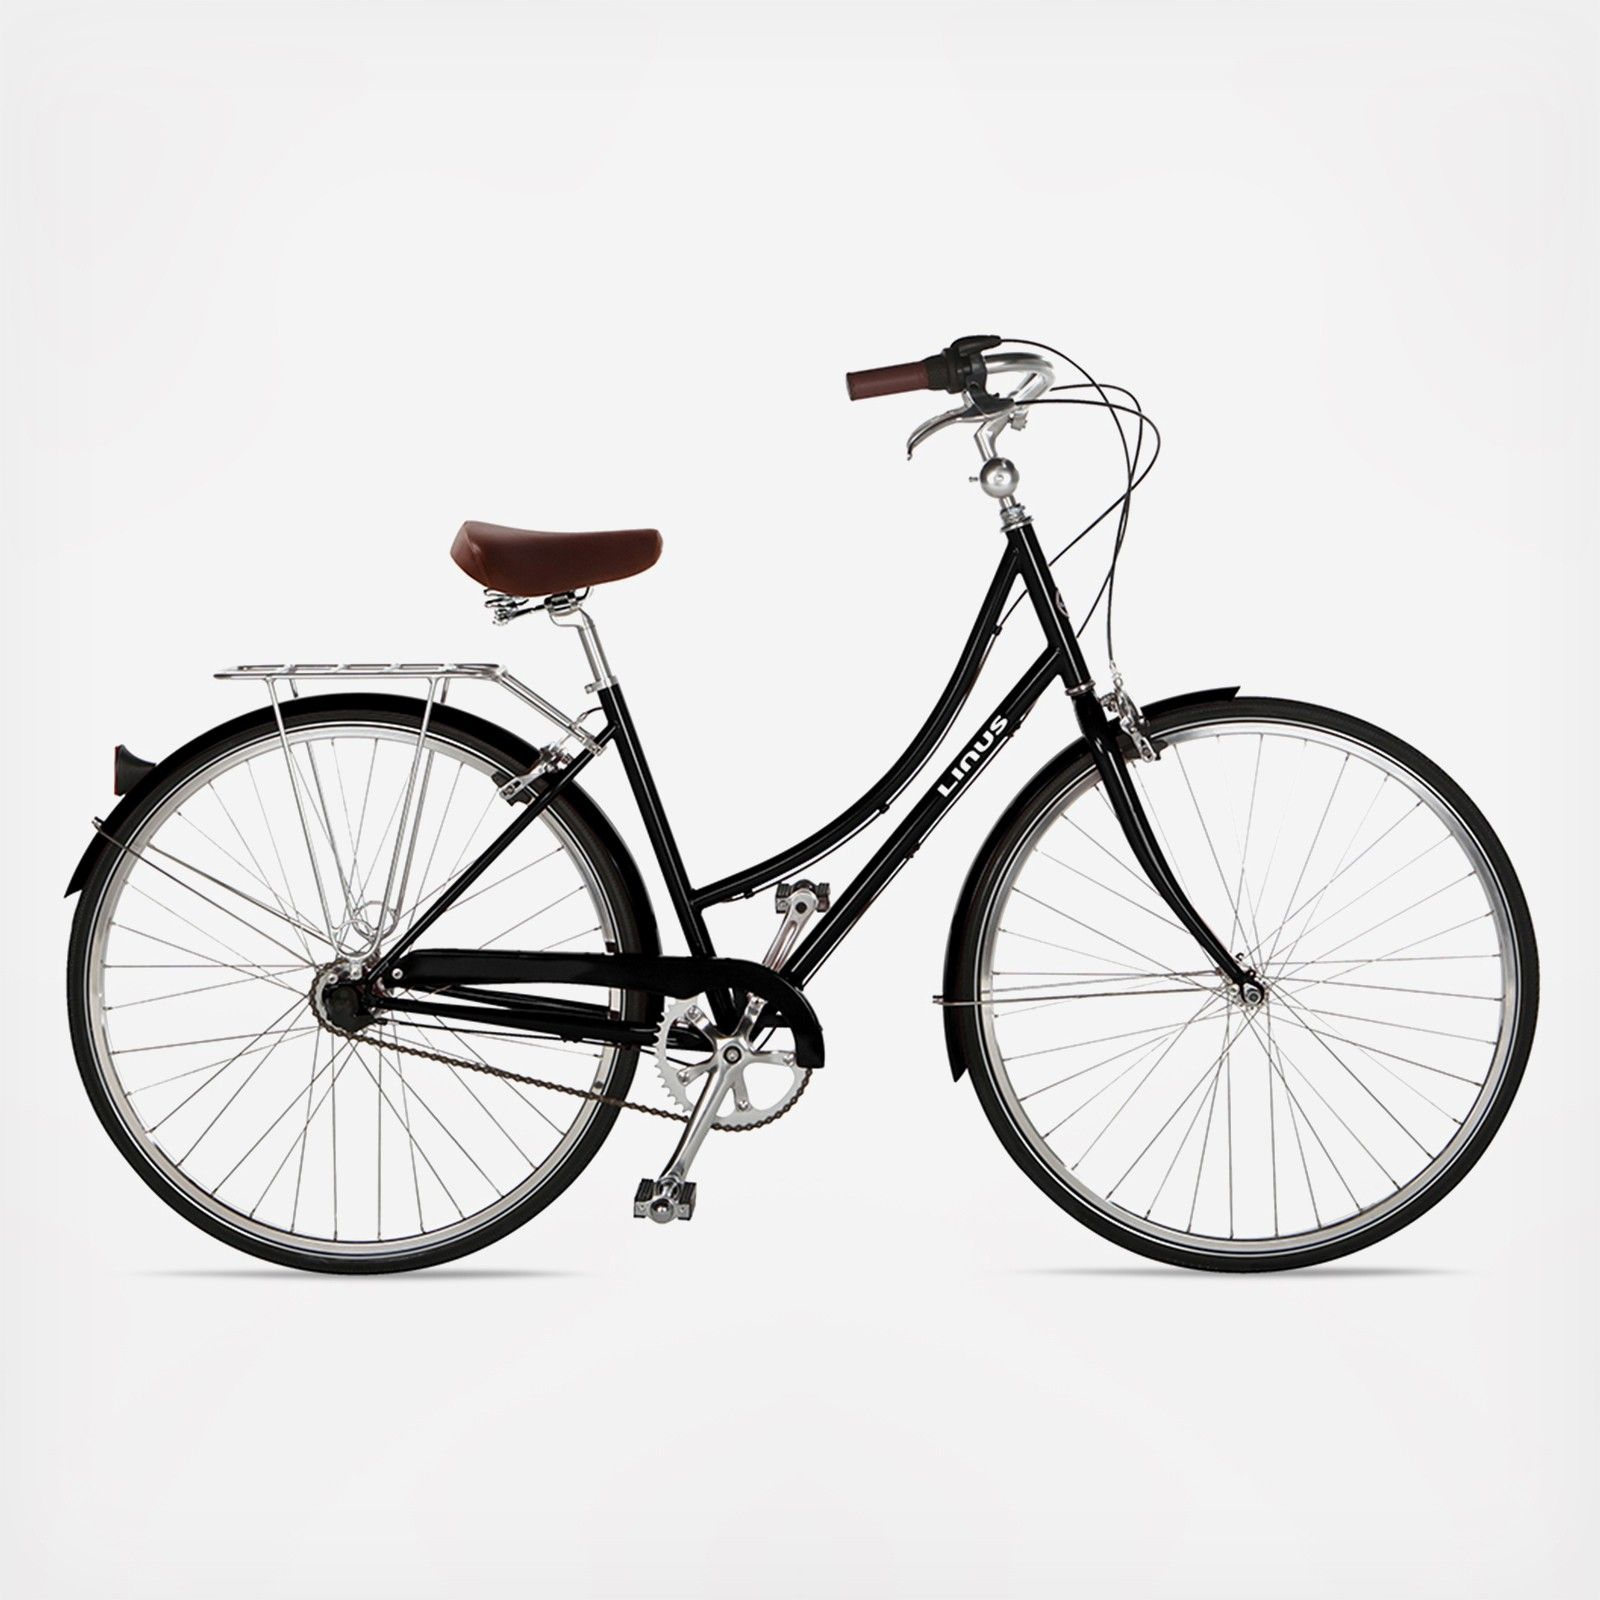 This Is Your Classic Dutch Bike A Sweeping Curved Frame And